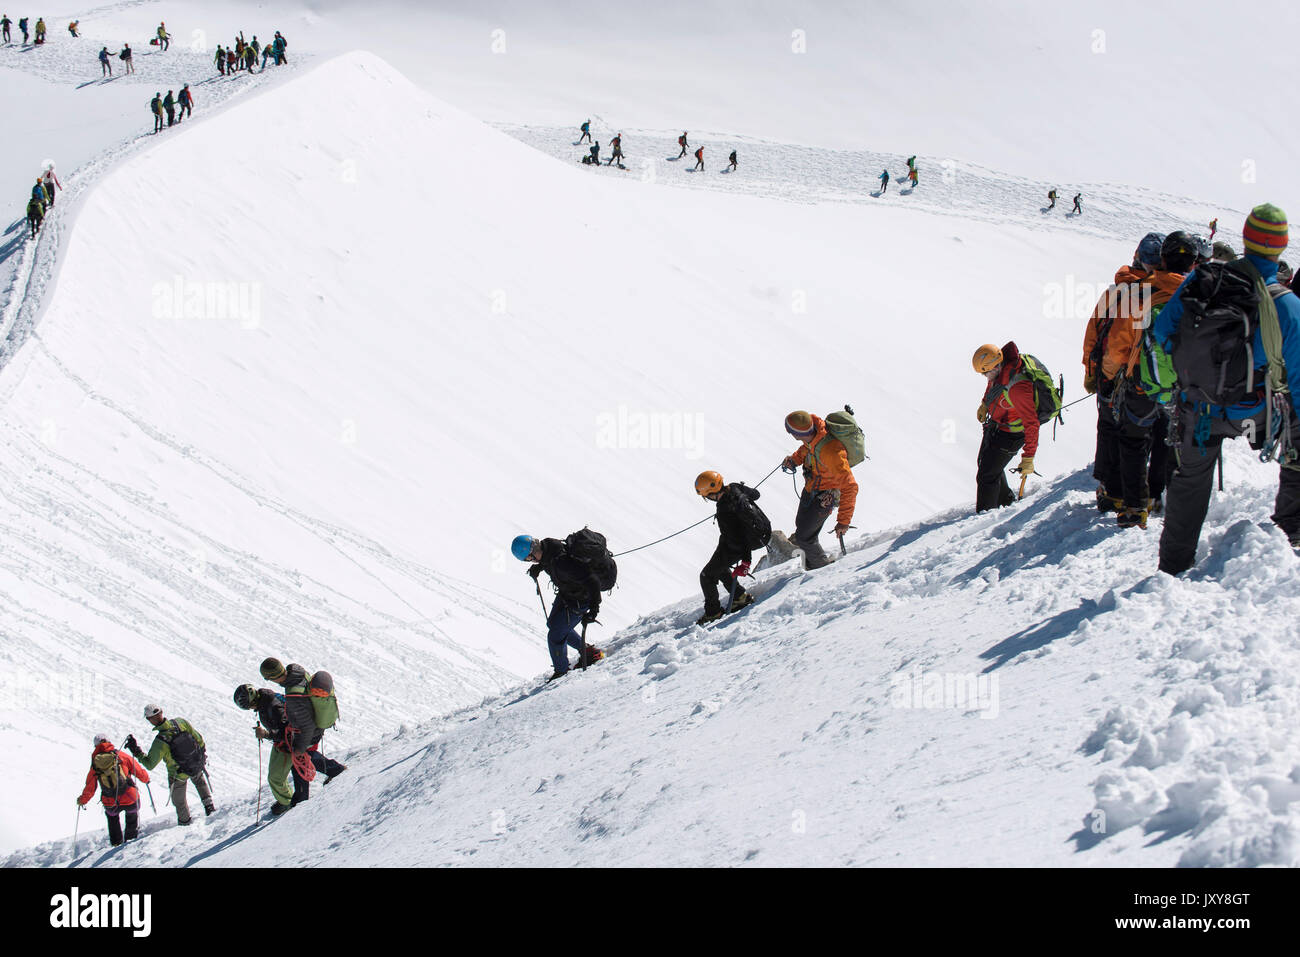 Climbers roped together on their way to the Aiguille du Midi mountain - Stock Image